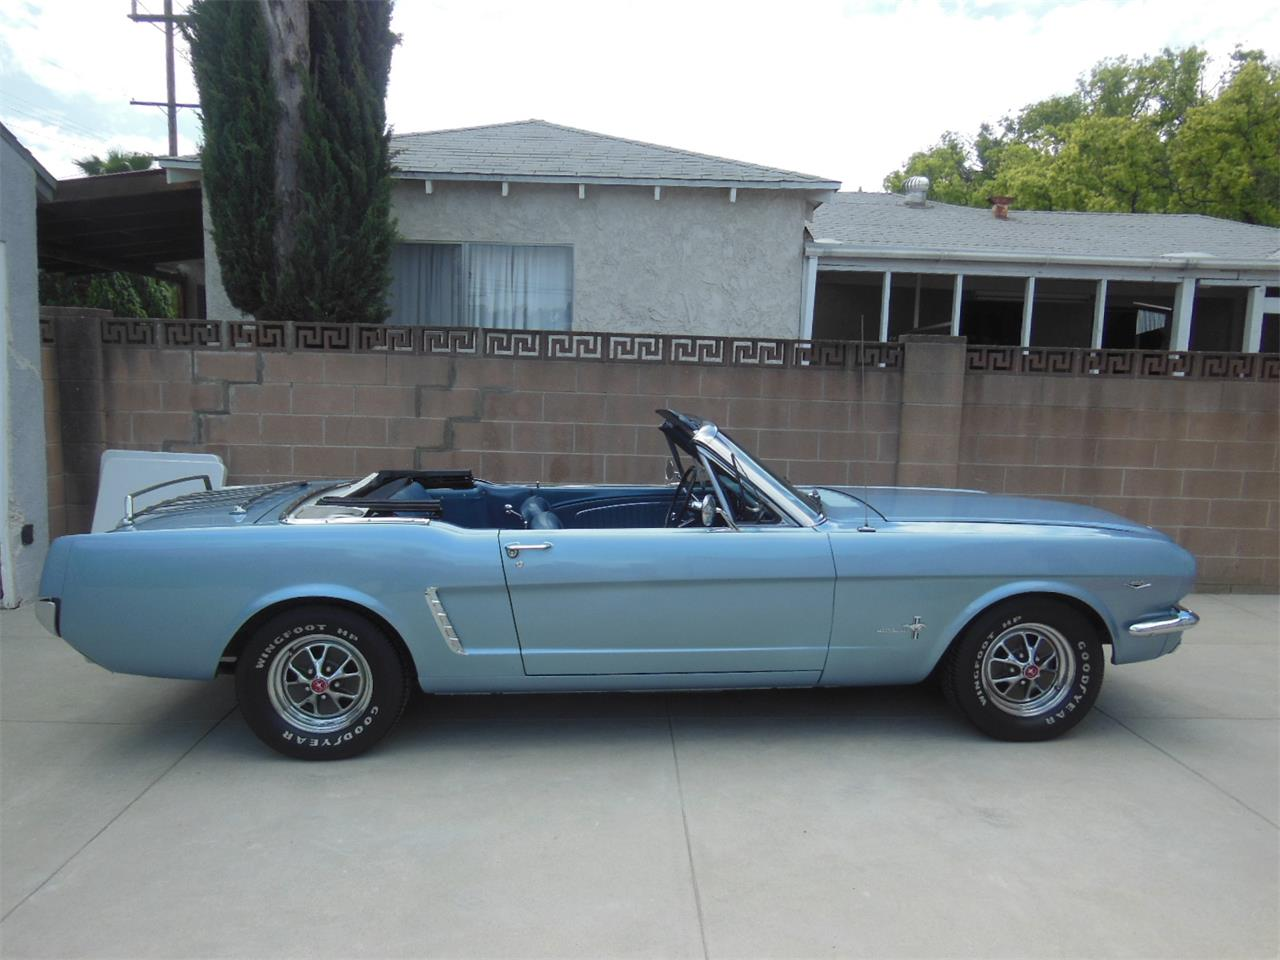 Large Picture of Classic '65 Ford Mustang located in west hills California Offered by a Private Seller - Q1U8